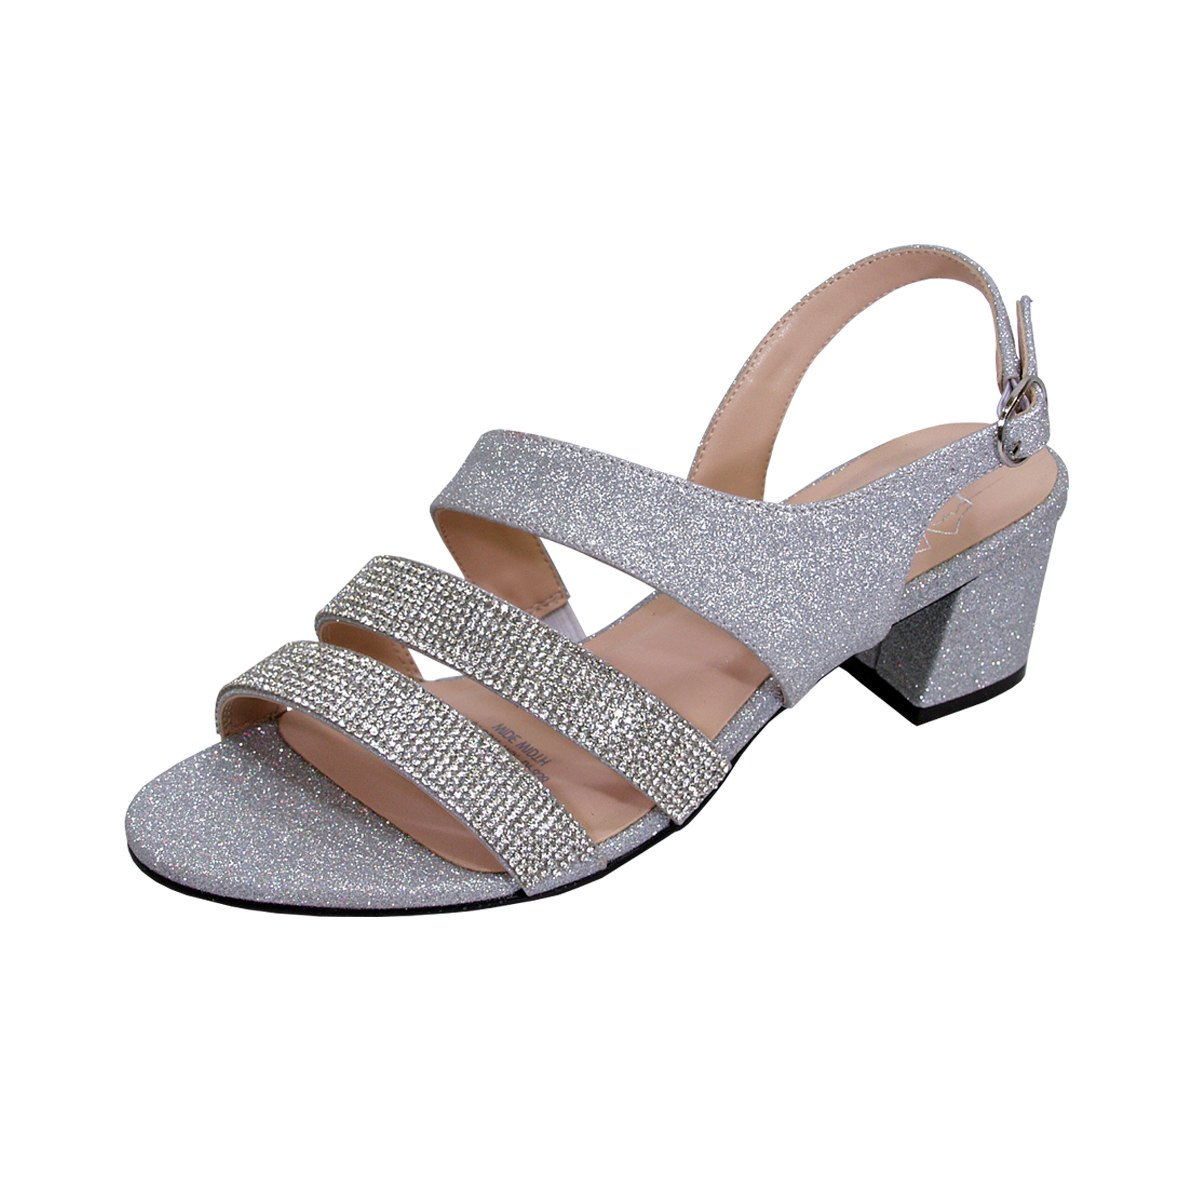 Floral Dorothy Women Extra Wide Width Chic Rhinestone Straps Dressy Party Heeled Sandals Silver 8